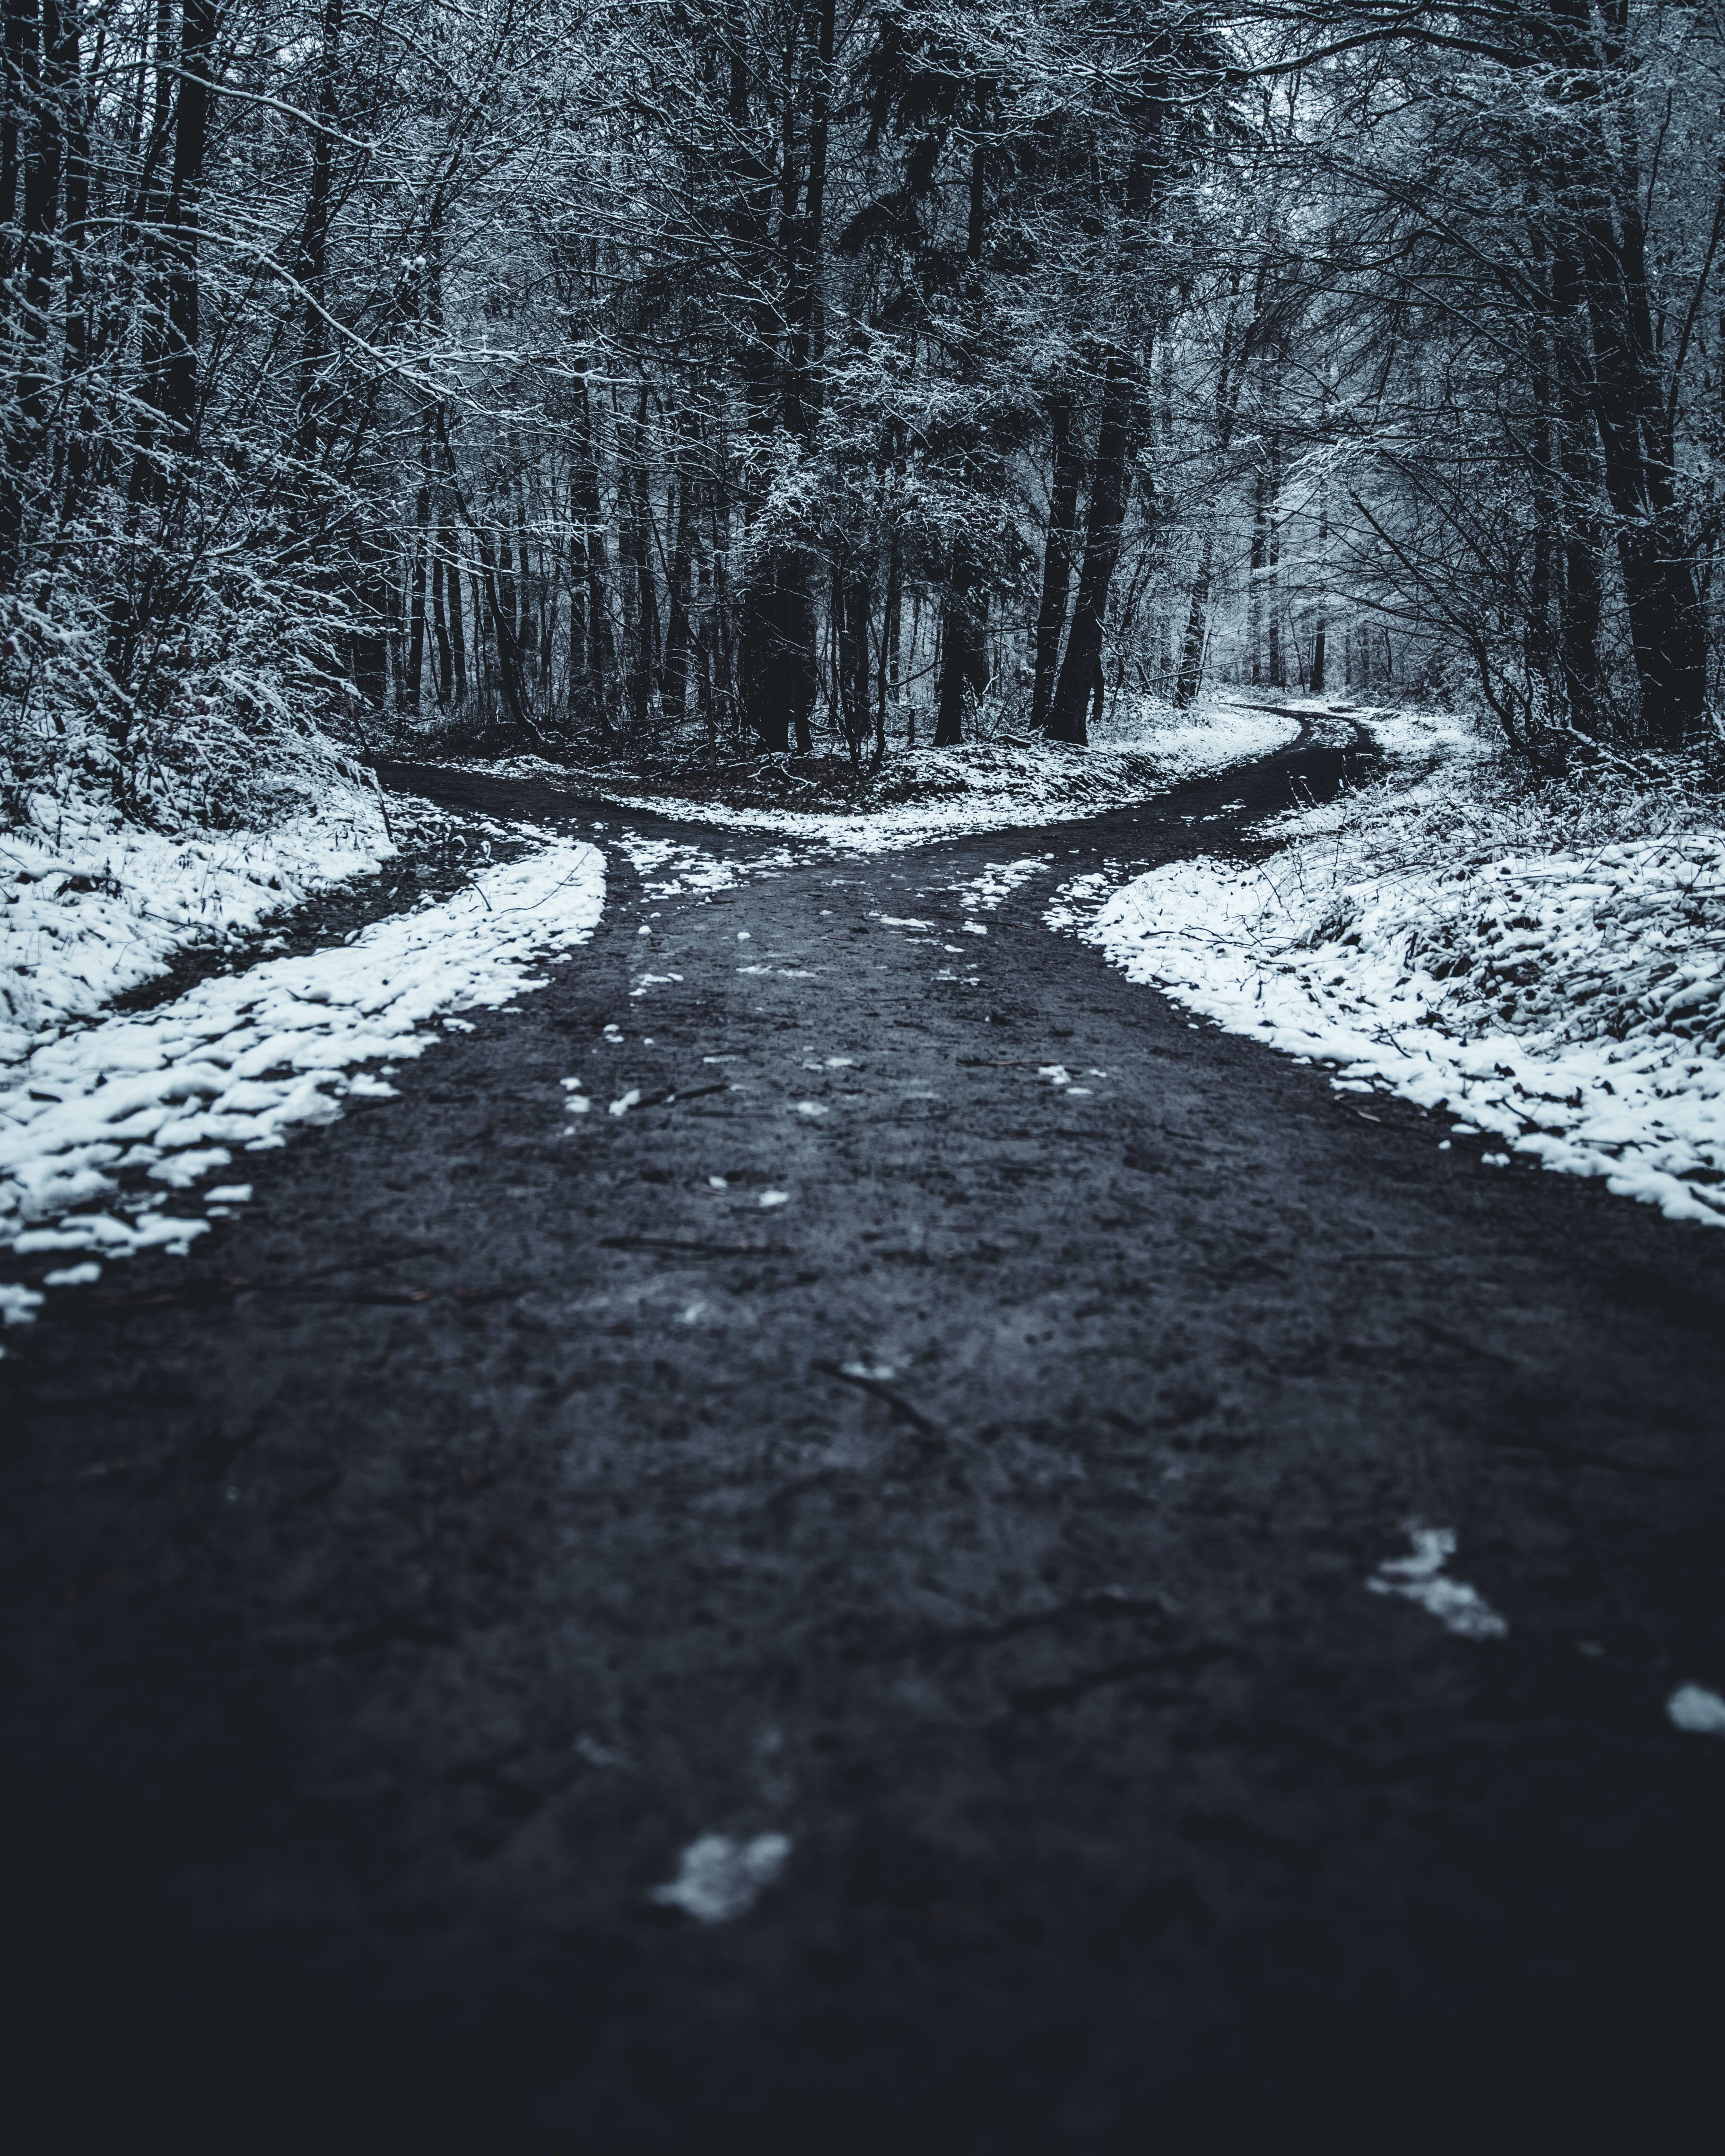 landscape photography of splitted road surrounded with trees